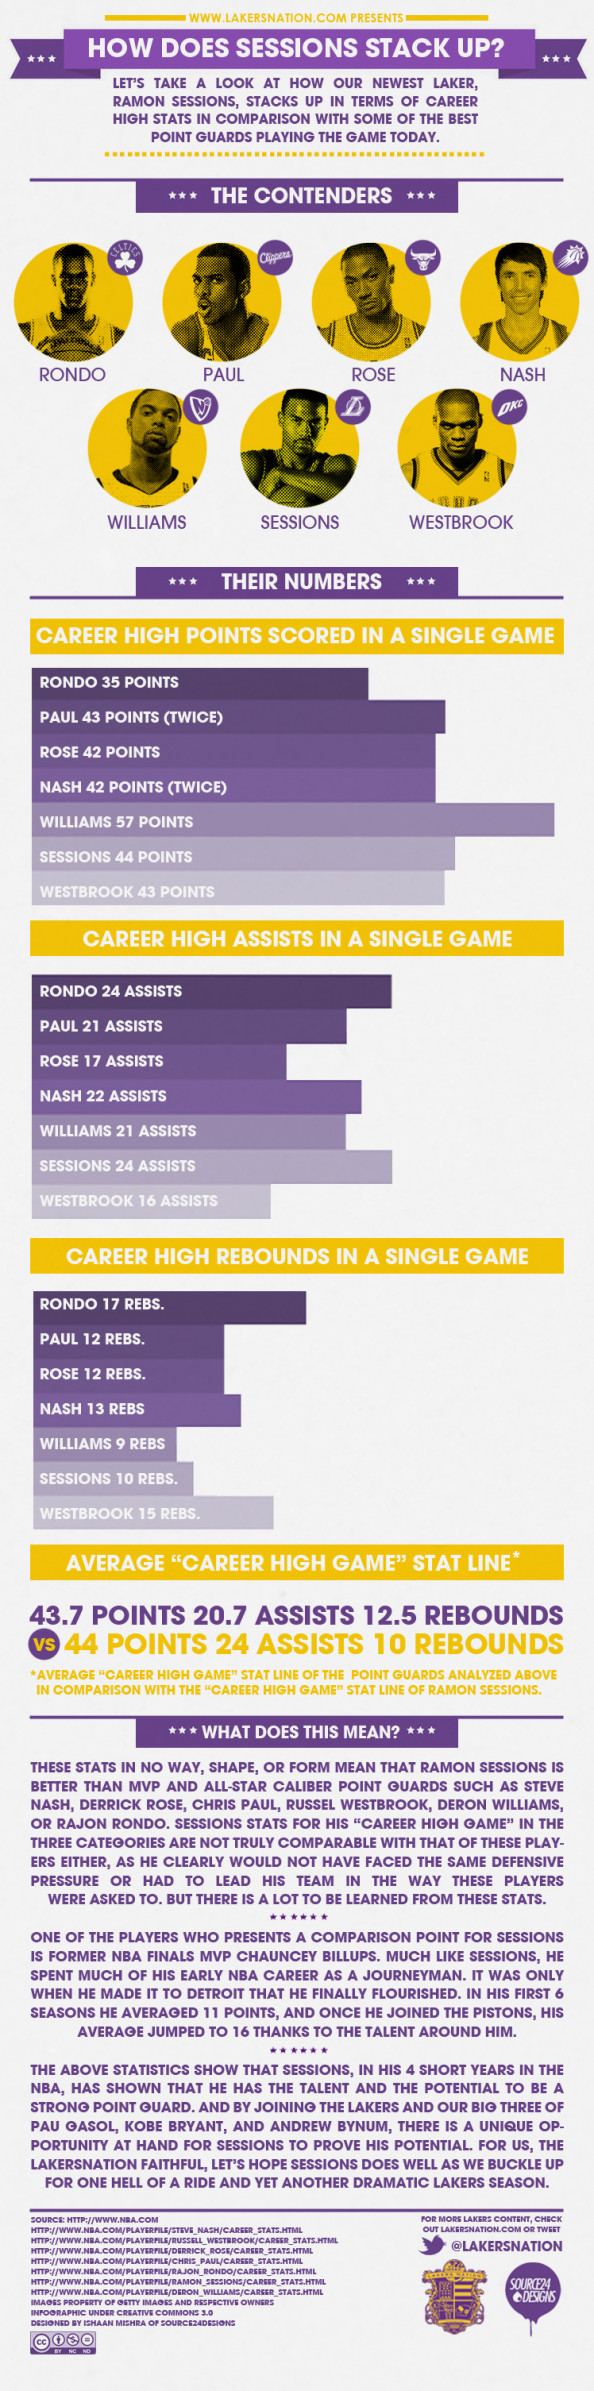 How does Ramon Sessions Stack up in the NBA? Infographic